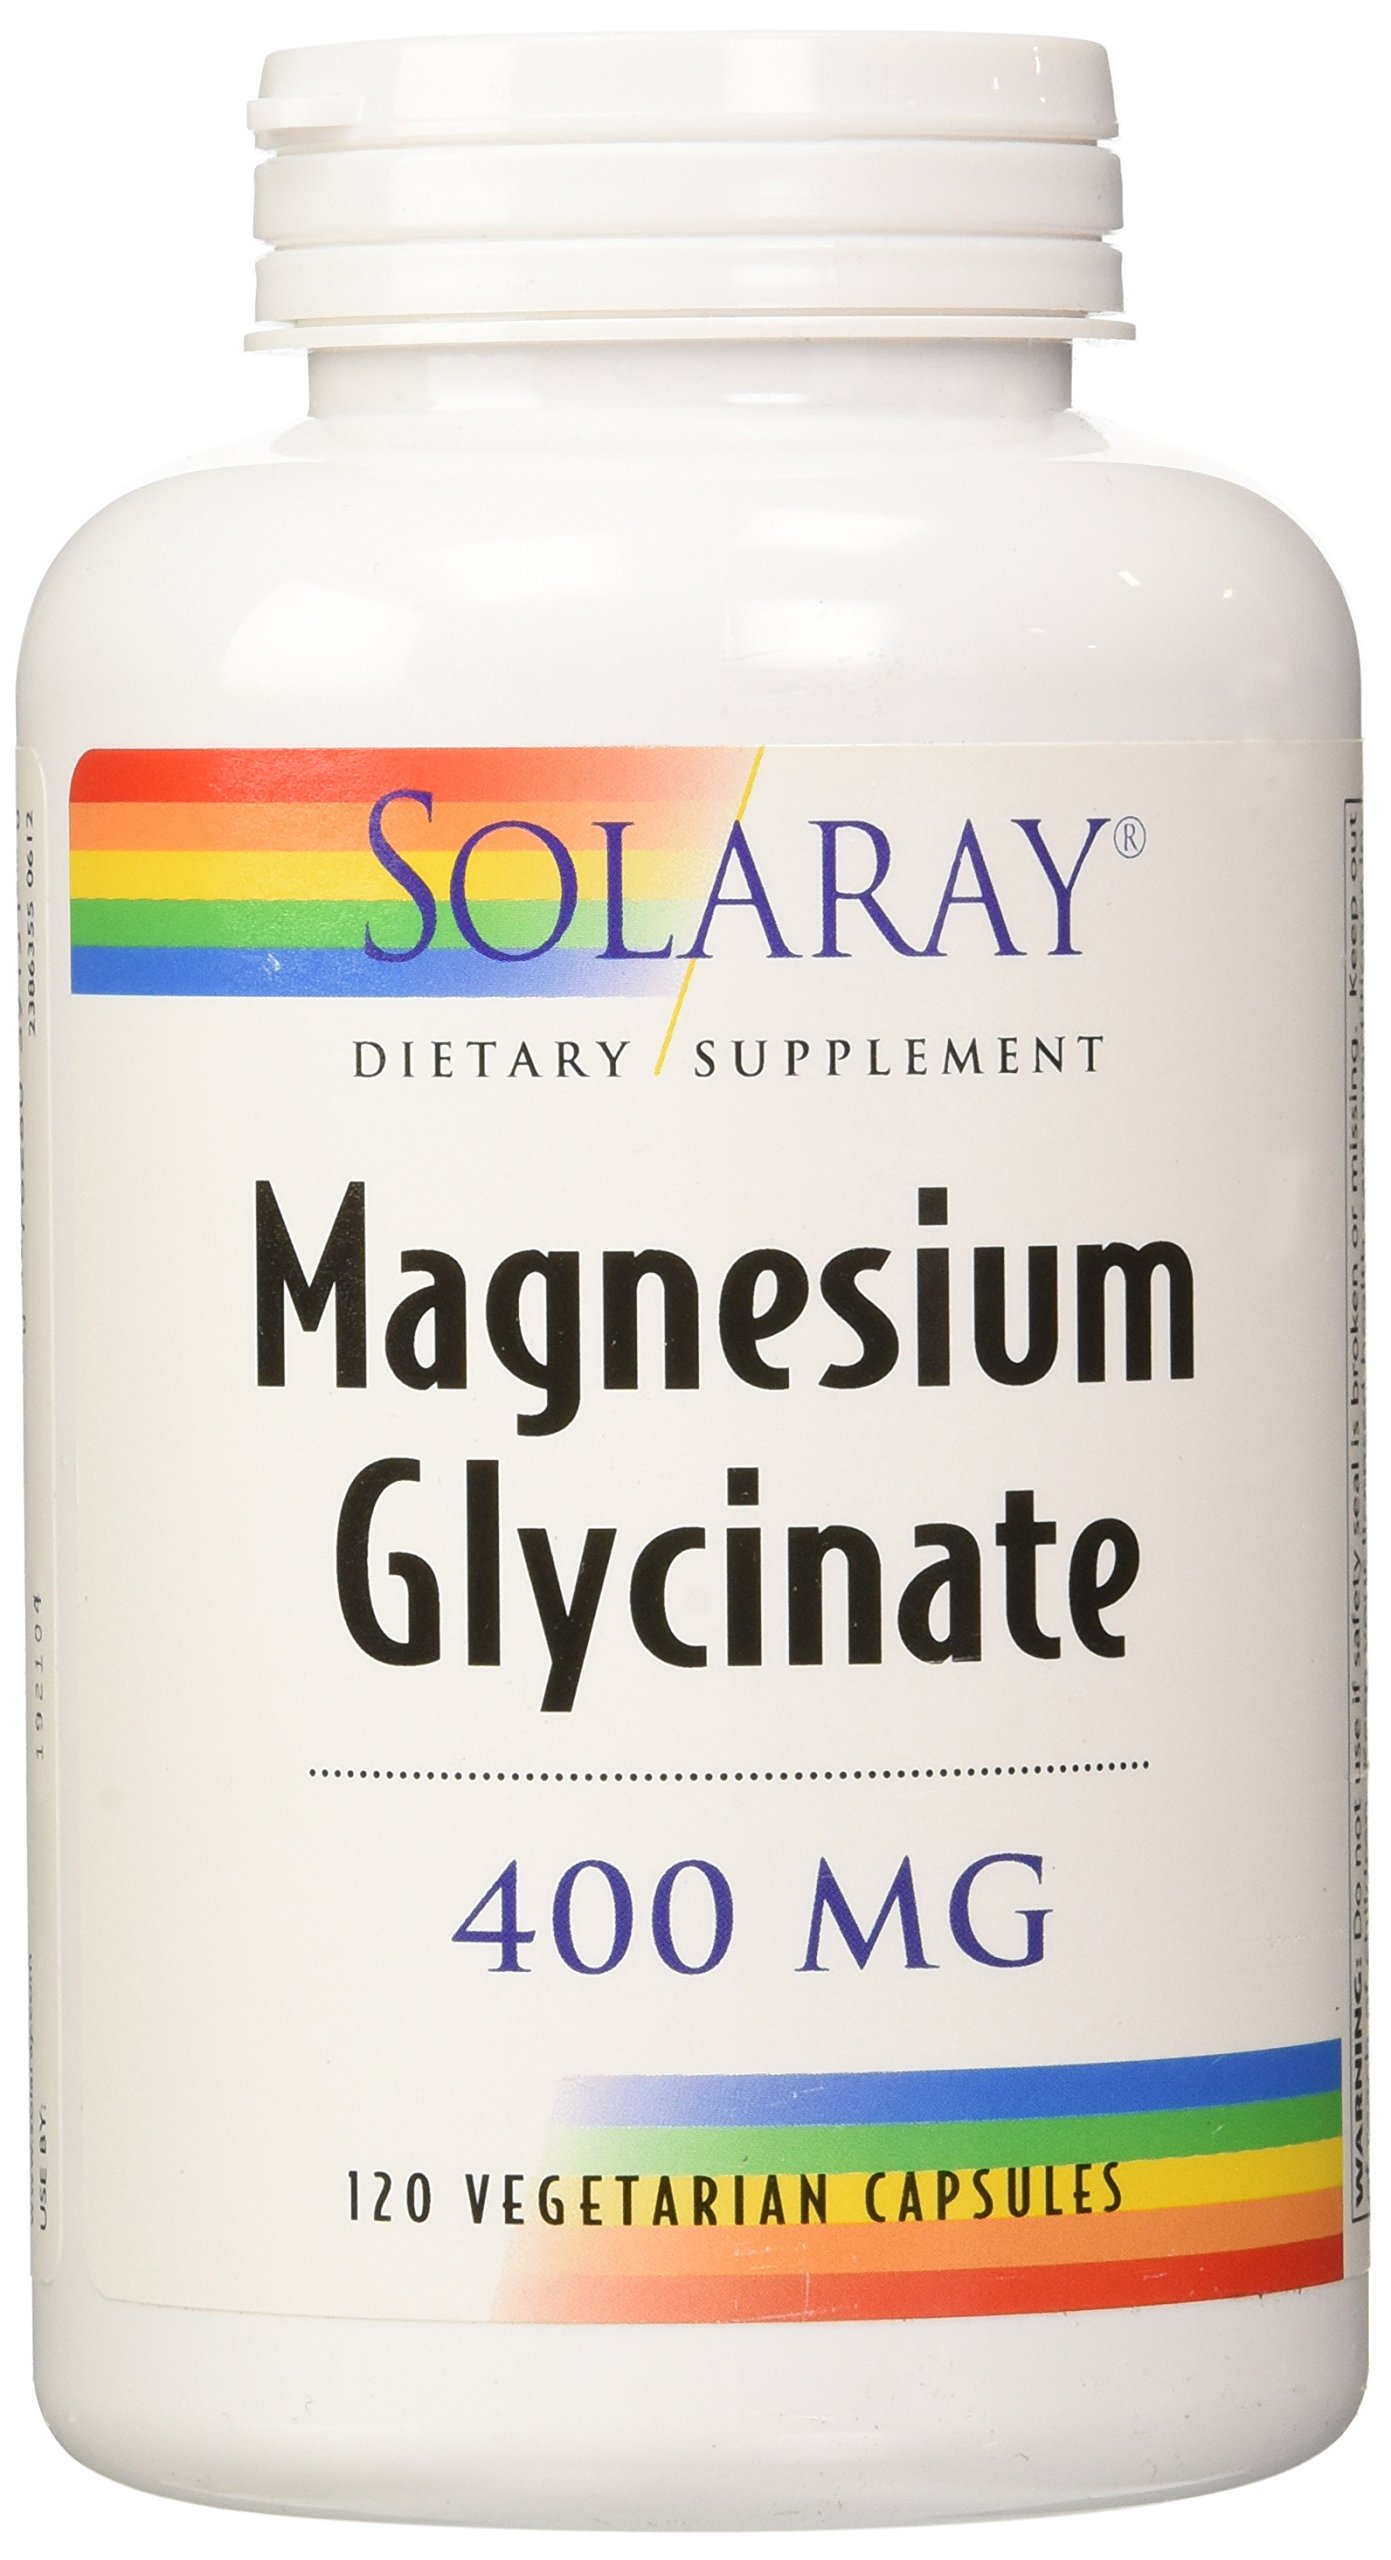 Solaray Magnesium Glycinate Dietary Supplement, 400 mg per 4 Capsules, 120 Count